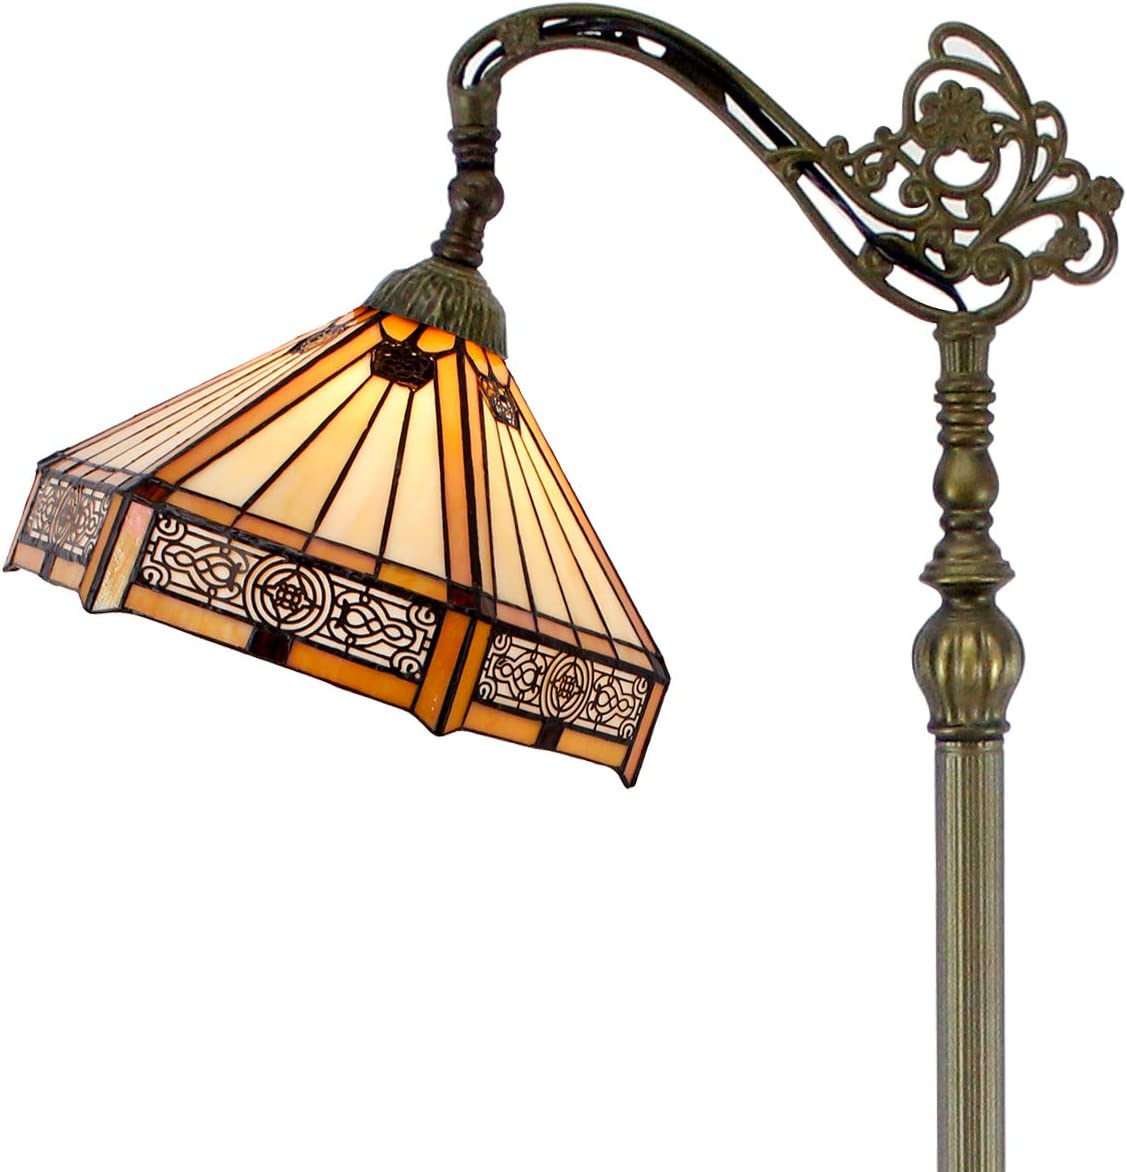 Tiffany Mission Style Reading Floor Lamp Yellow Hexagon Stained Glass Lampshade in 64 Inch Tall Antique Arched Adjust Base for Living Room Bedroom Bedside Desk Coffee Table S011 WERFACTORY